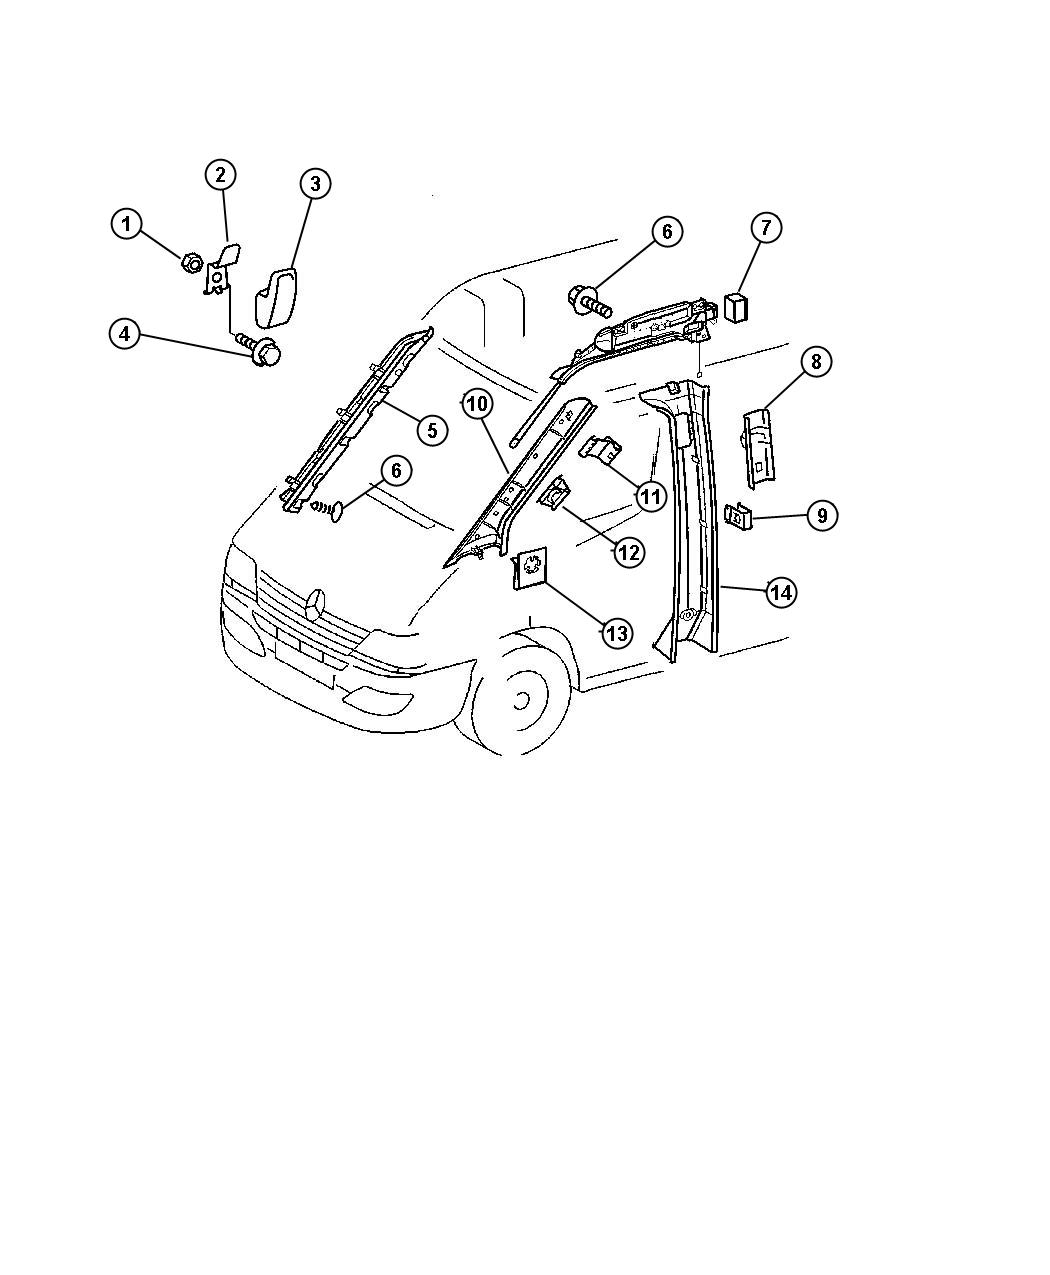 tags: #2005 chevy uplander heater electrical diagrams#parts for chevy  uplander#2005 chevy uplander engine diagram#chevy malibu parts diagram#2008  chevy